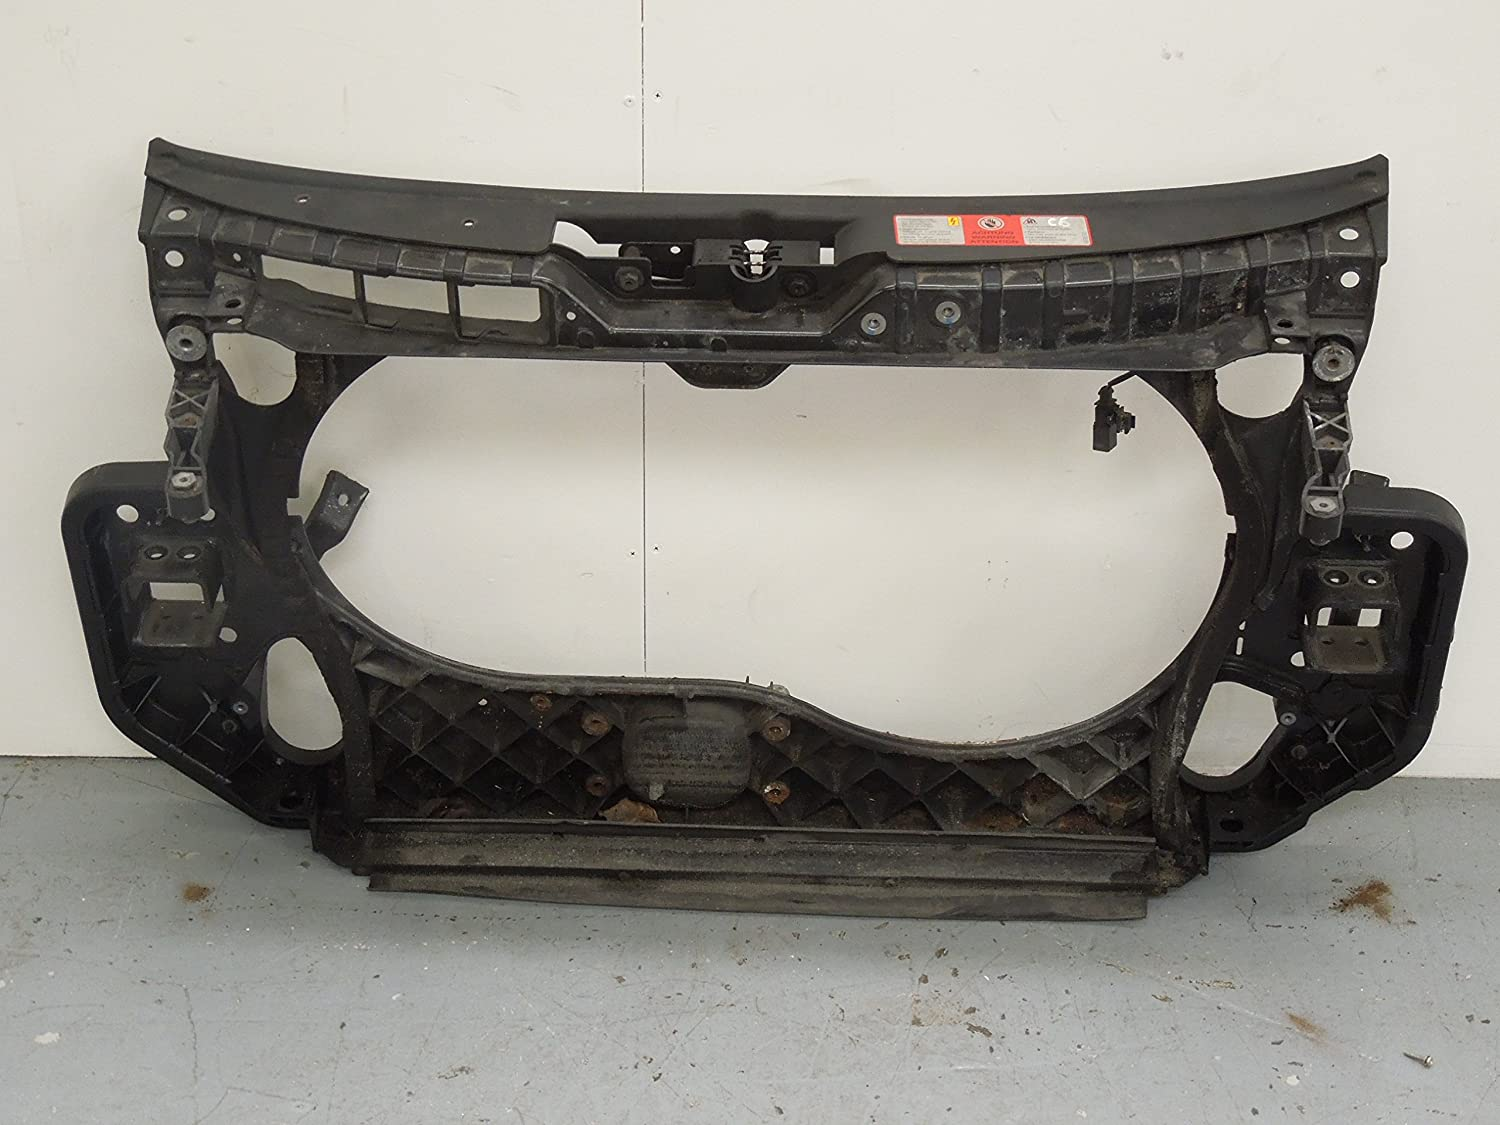 Audi A6 C6 Front Slam Panel Radiator Support